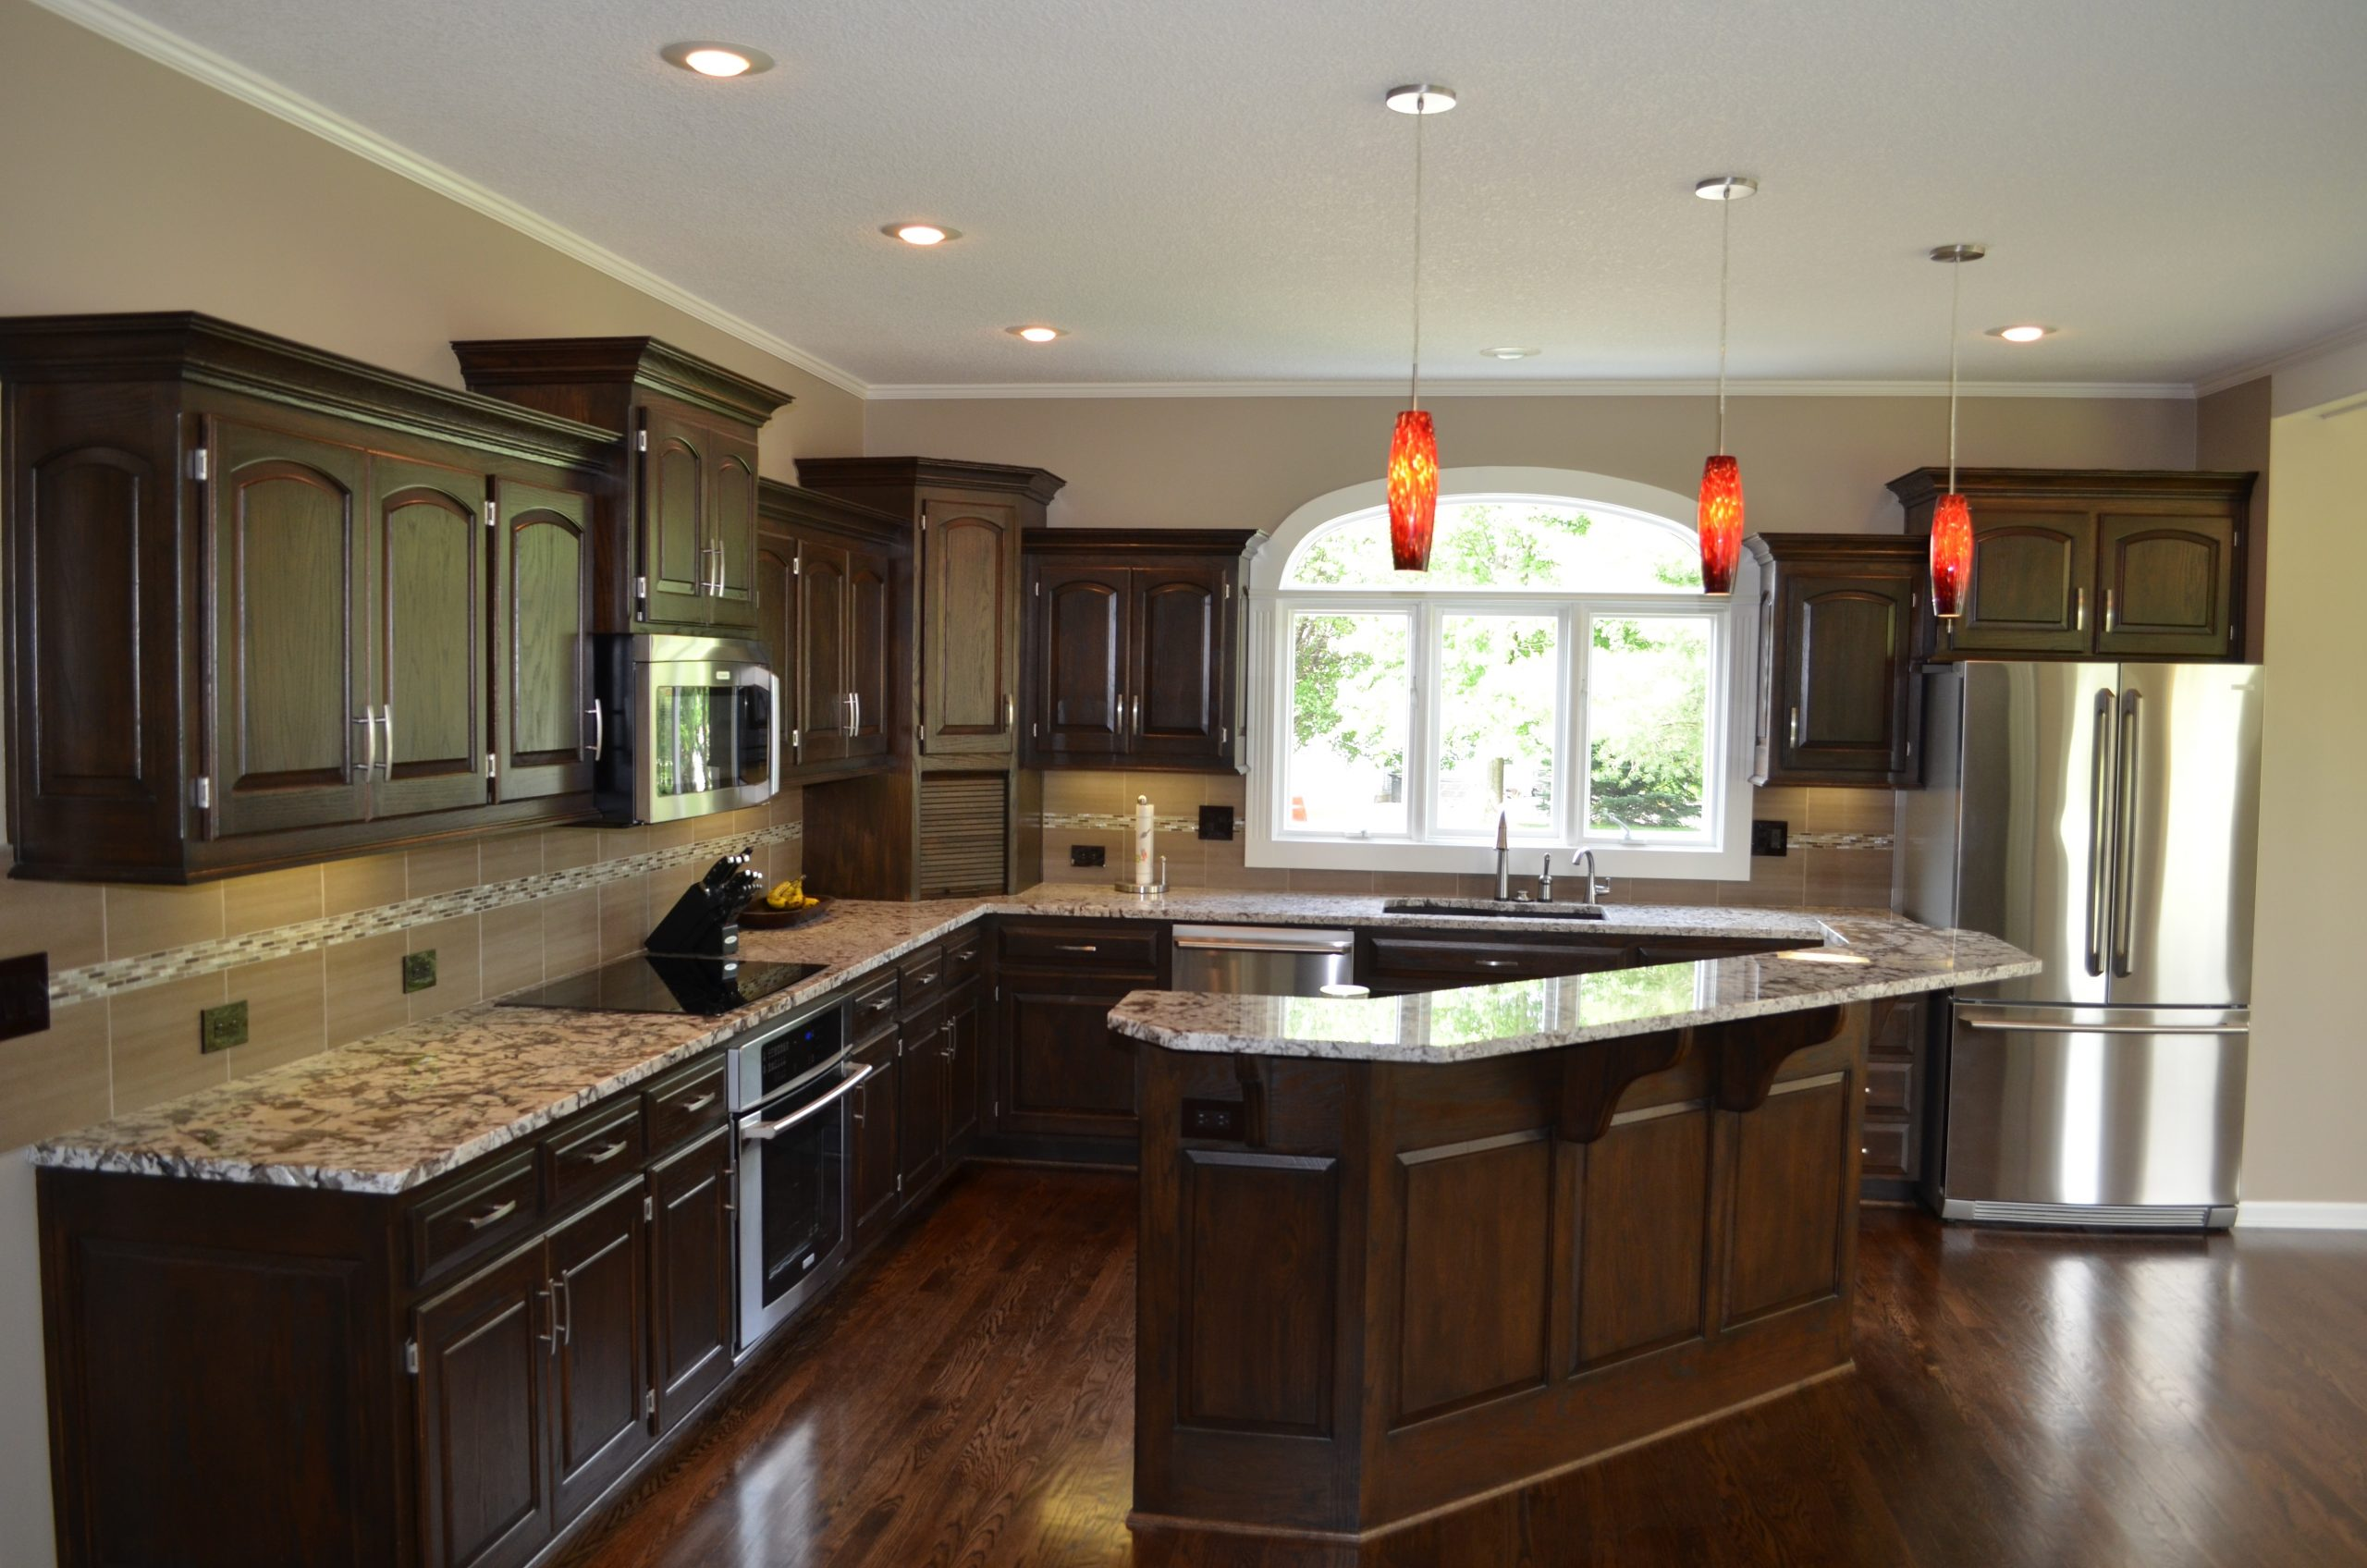 Profitable Remodeling Business For Sale Grand Rapids Michigan! for Kitchen Remodeling Grand Rapids Mi